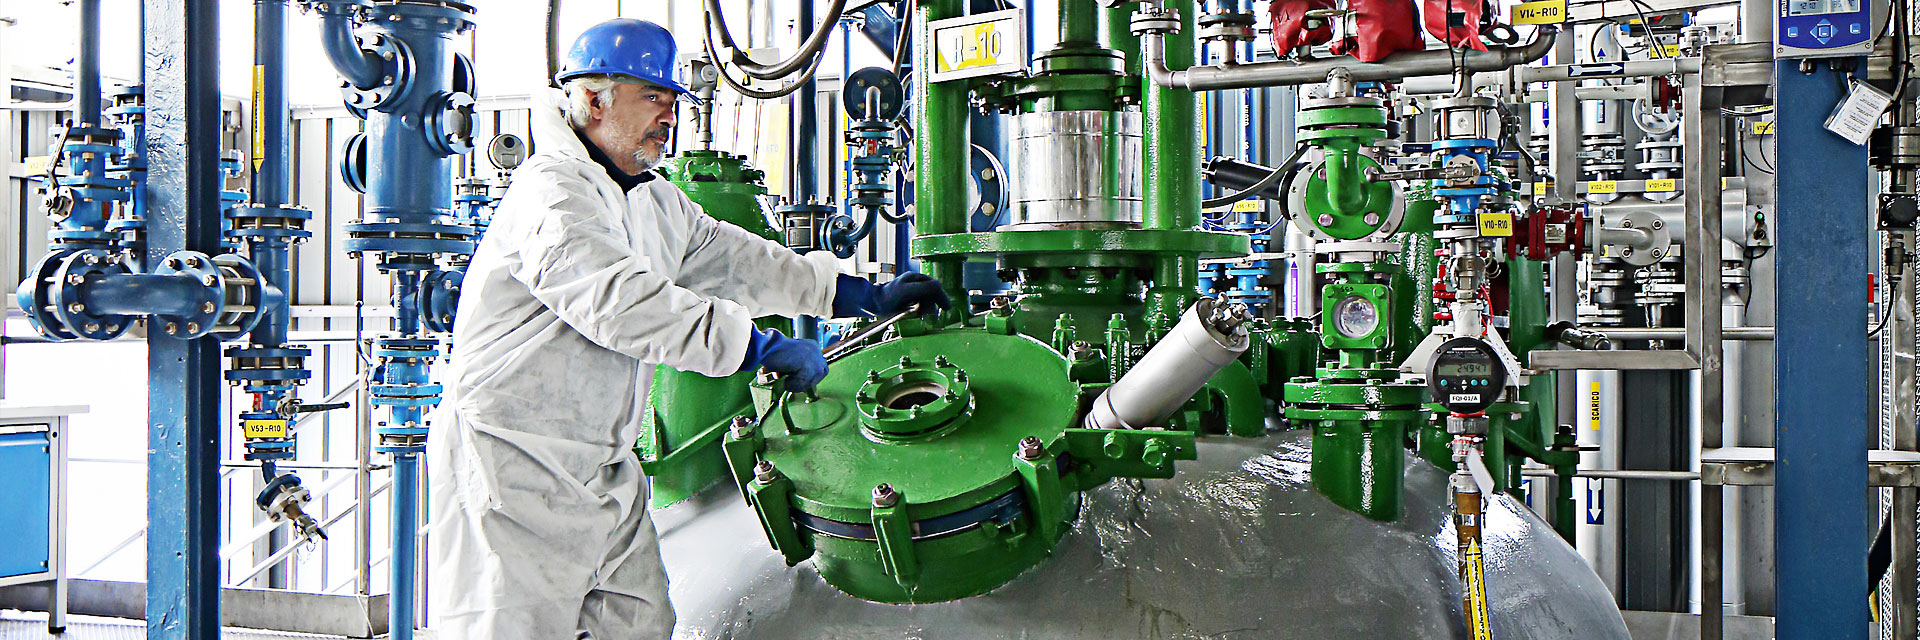 CordenPharma operator in PPE working with reactor in cGMP facility